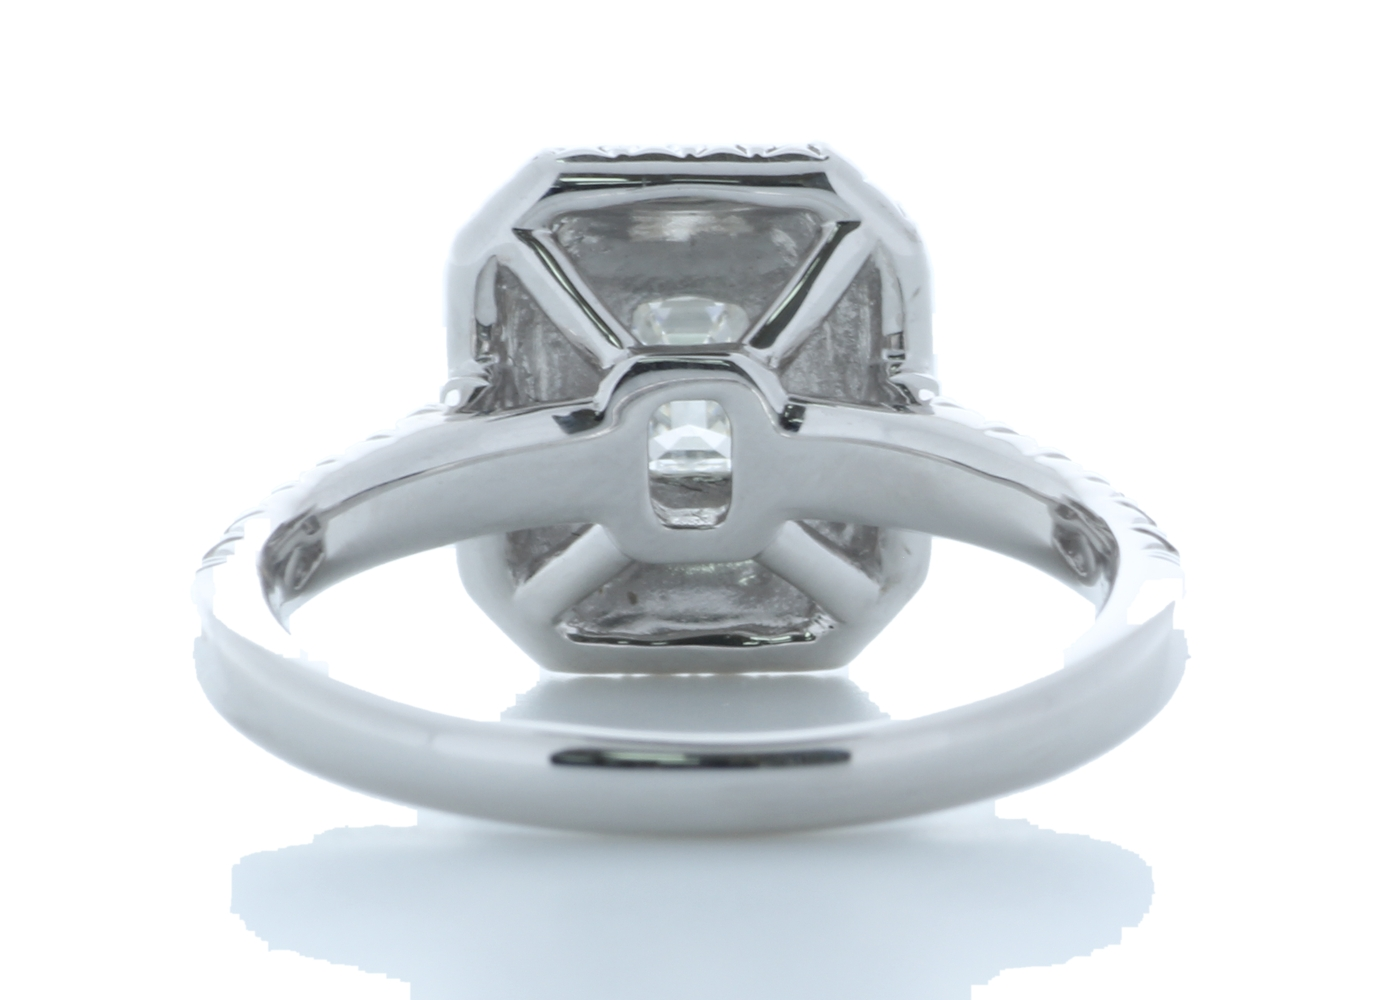 Platinum Single Stone With Halo Setting Ring 0.99 Carats - Image 3 of 4